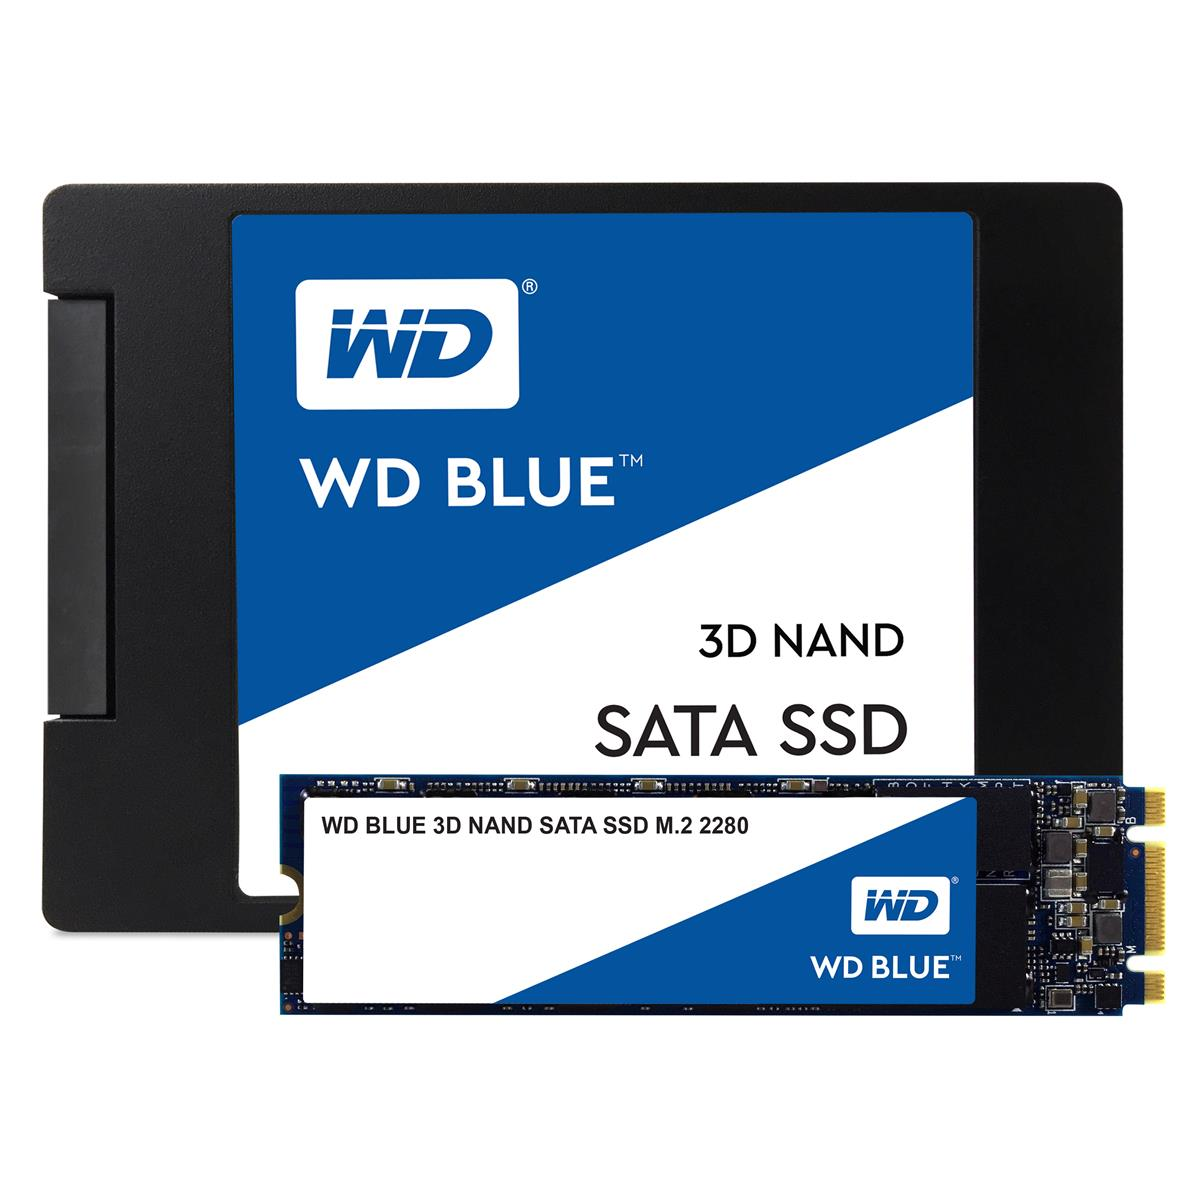 WD Blue (2TB) 3D NAND SATA M.2 Solid State Drive